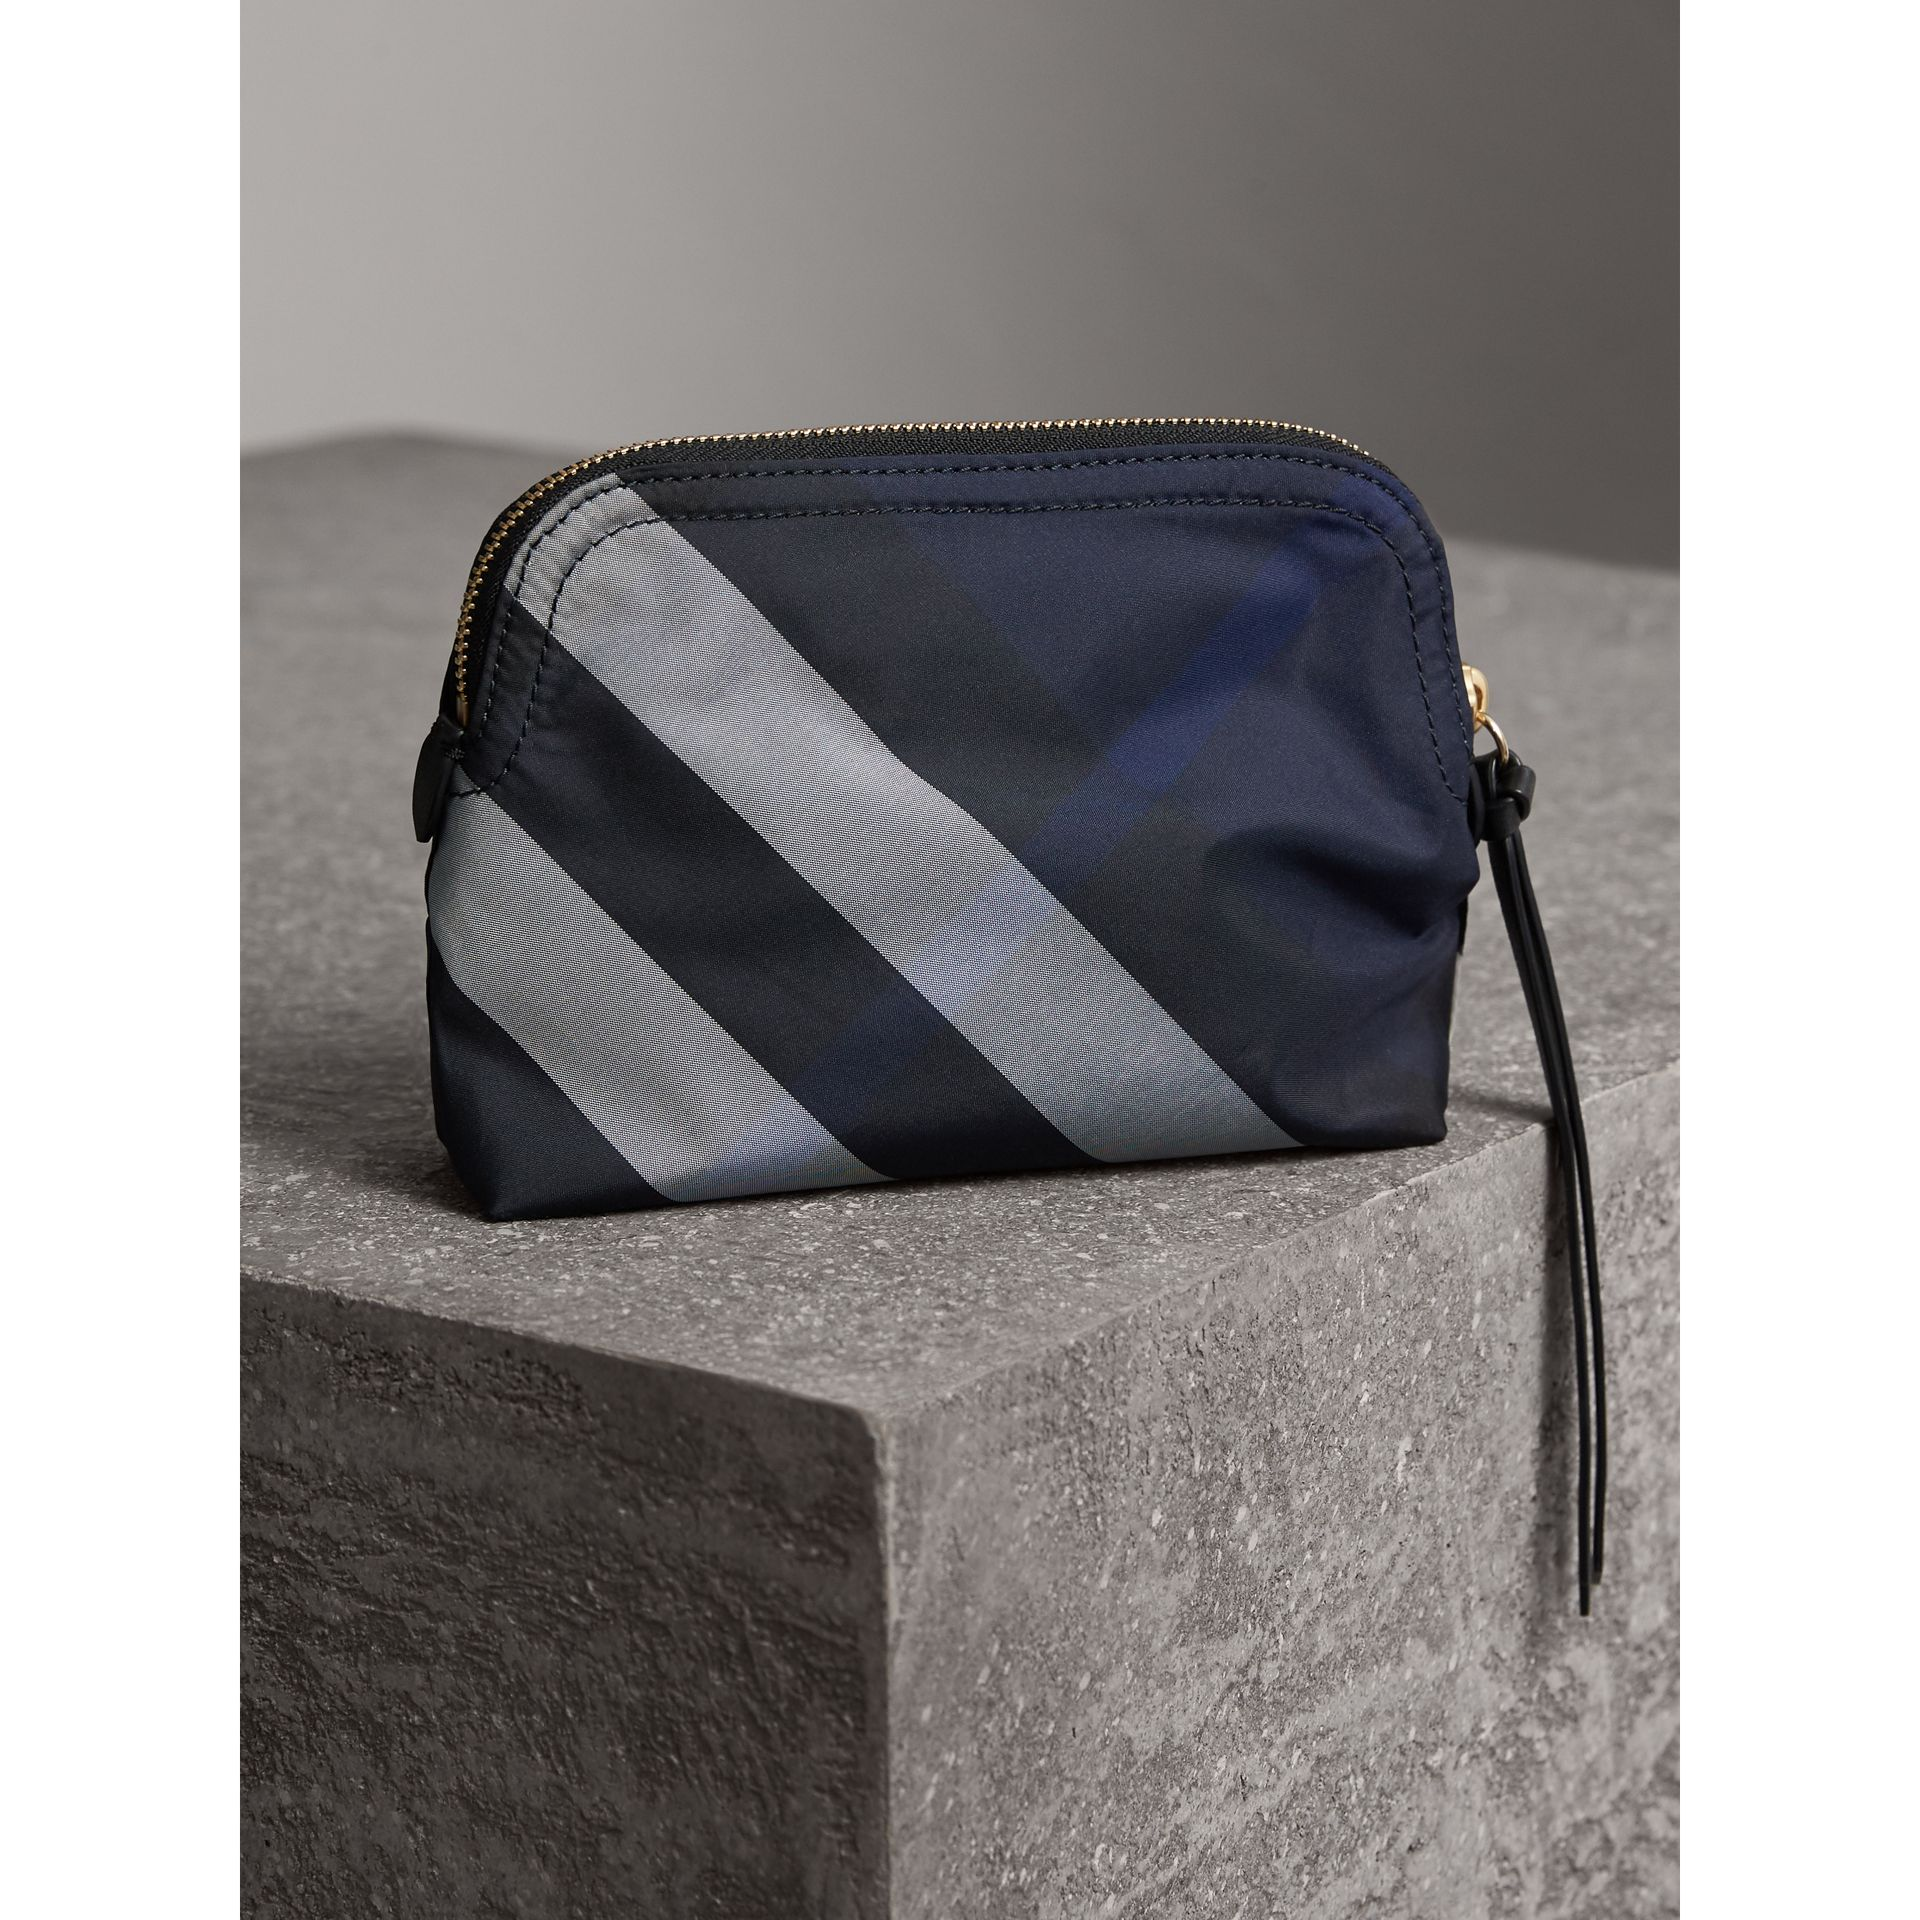 Pochette medium zippée en tissu technique à motif check (Bleu Indigo) - Femme | Burberry - photo de la galerie 3